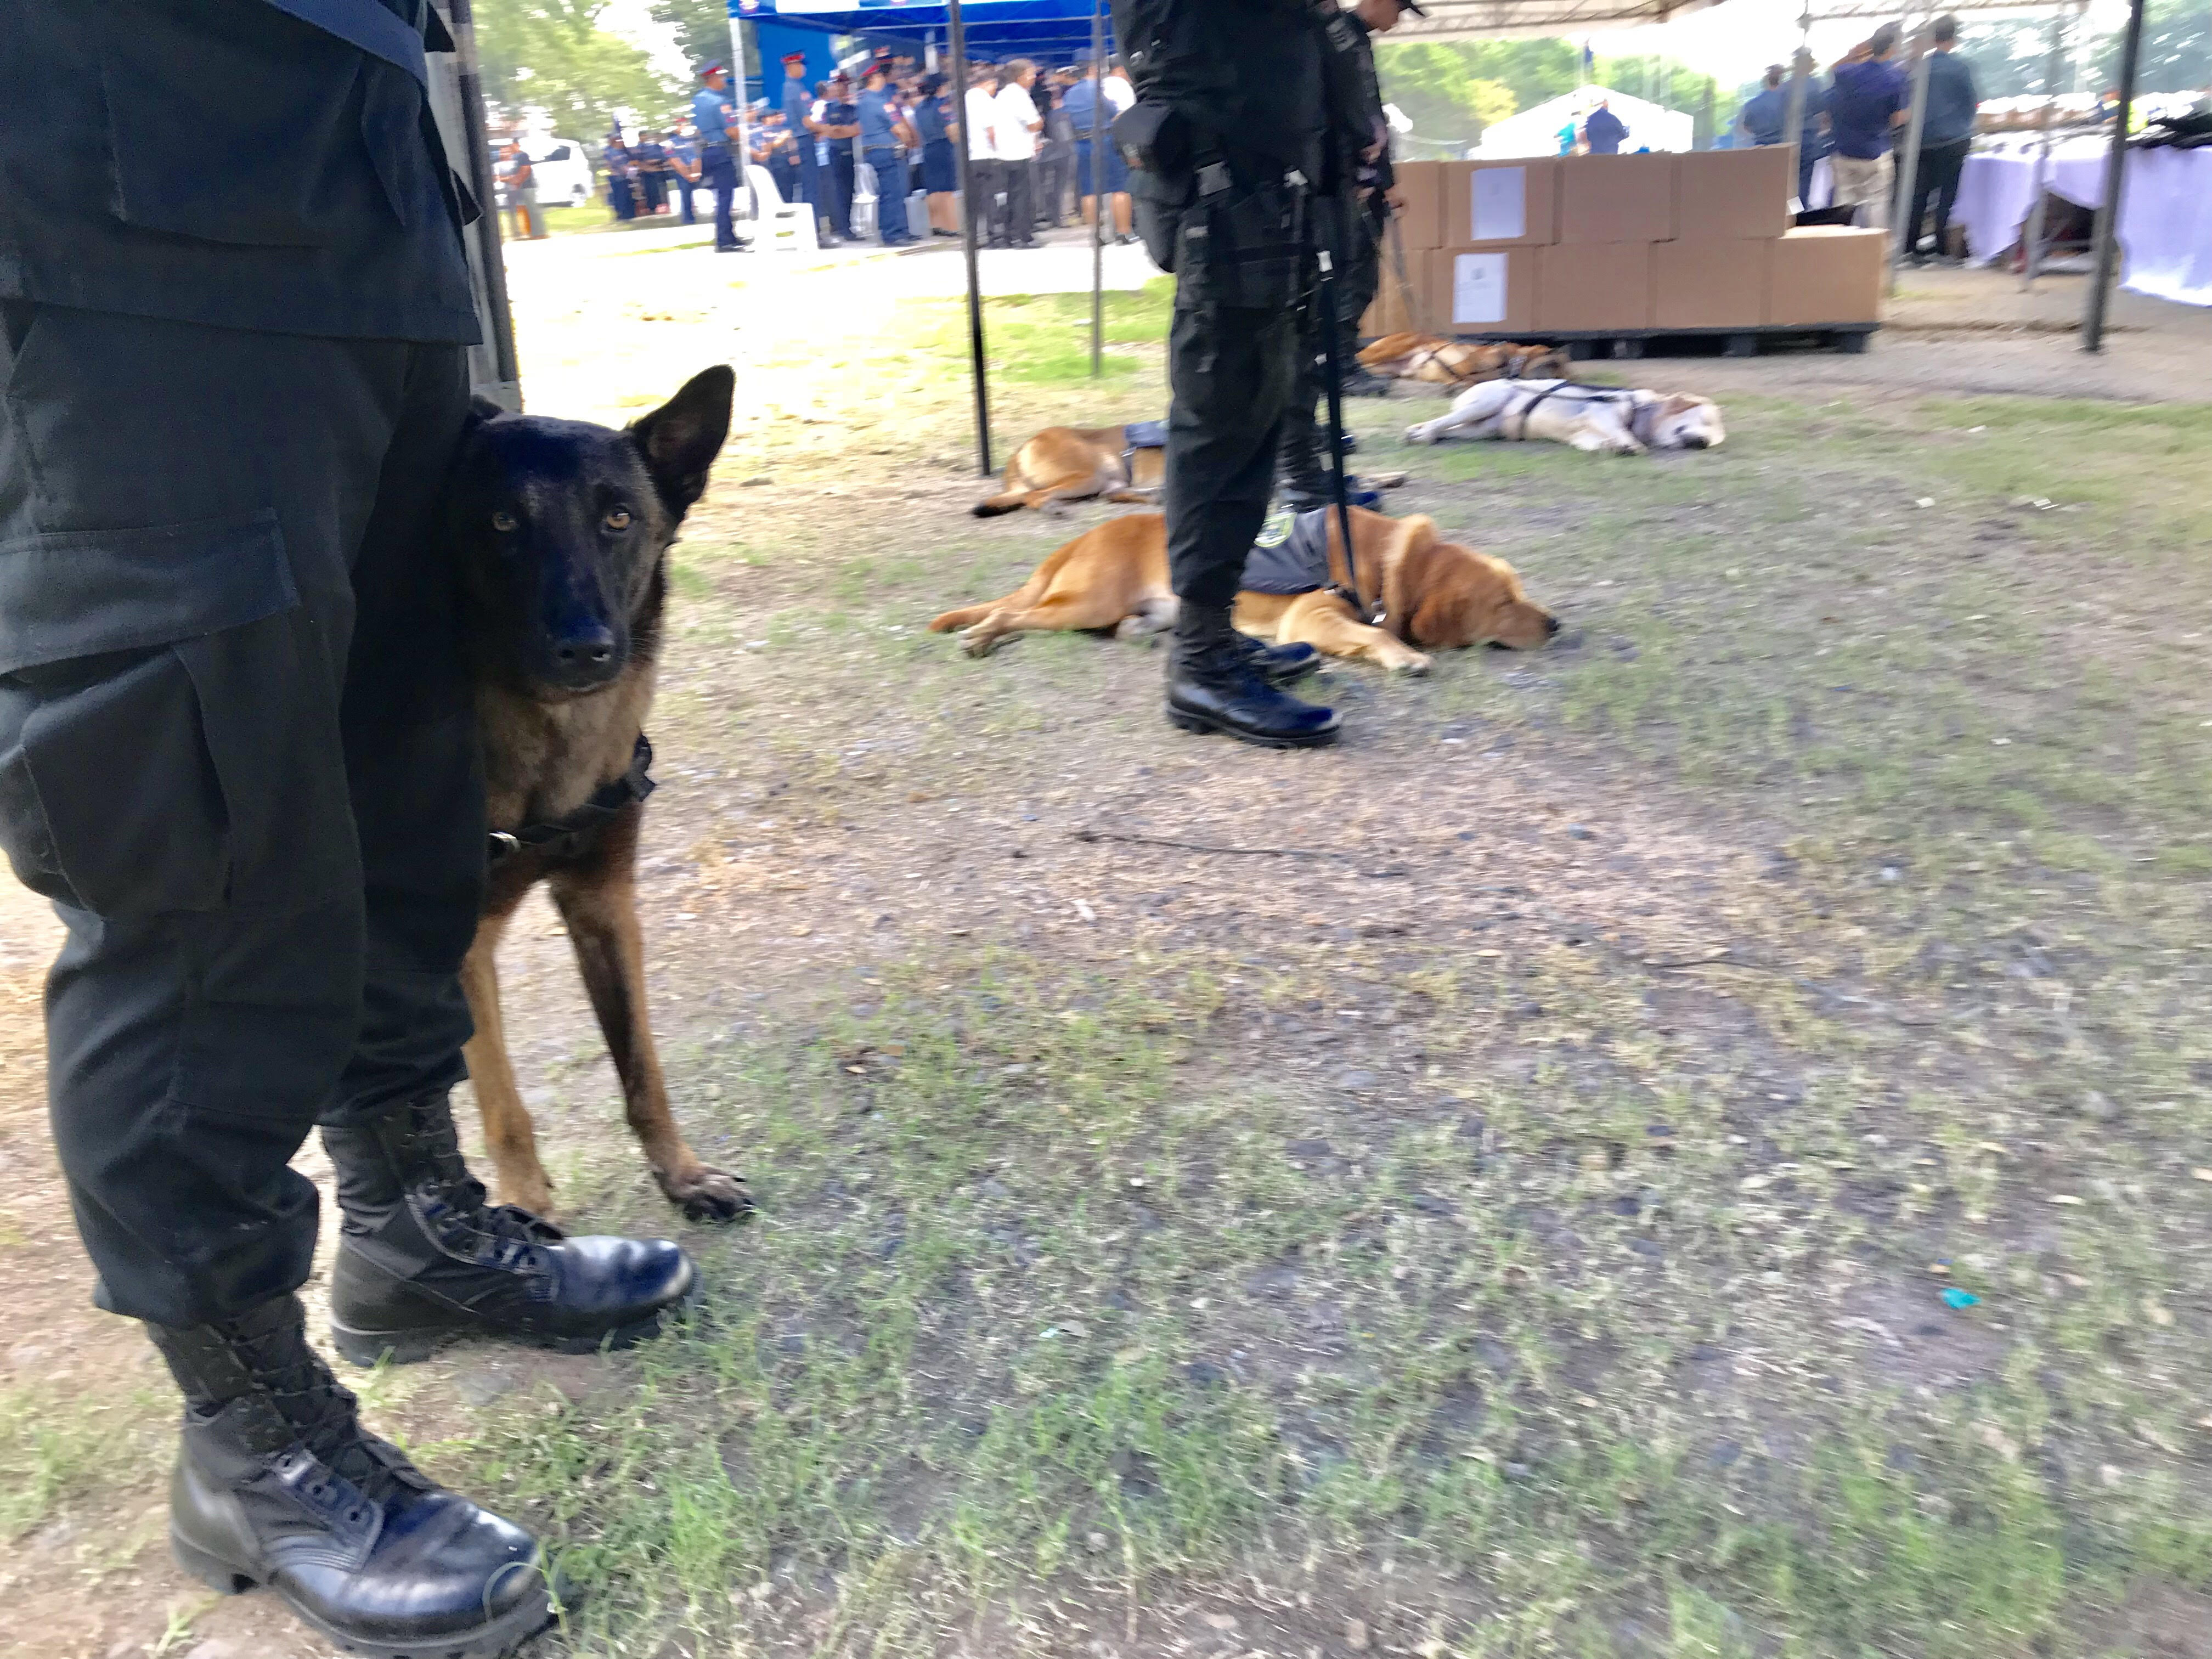 PUPS PRIORITIZED. The PNP presents newly acquired K-9 dogs in Camp Bagong Diwa, Taguig City. Photo by Rambo Talabong/Rappler